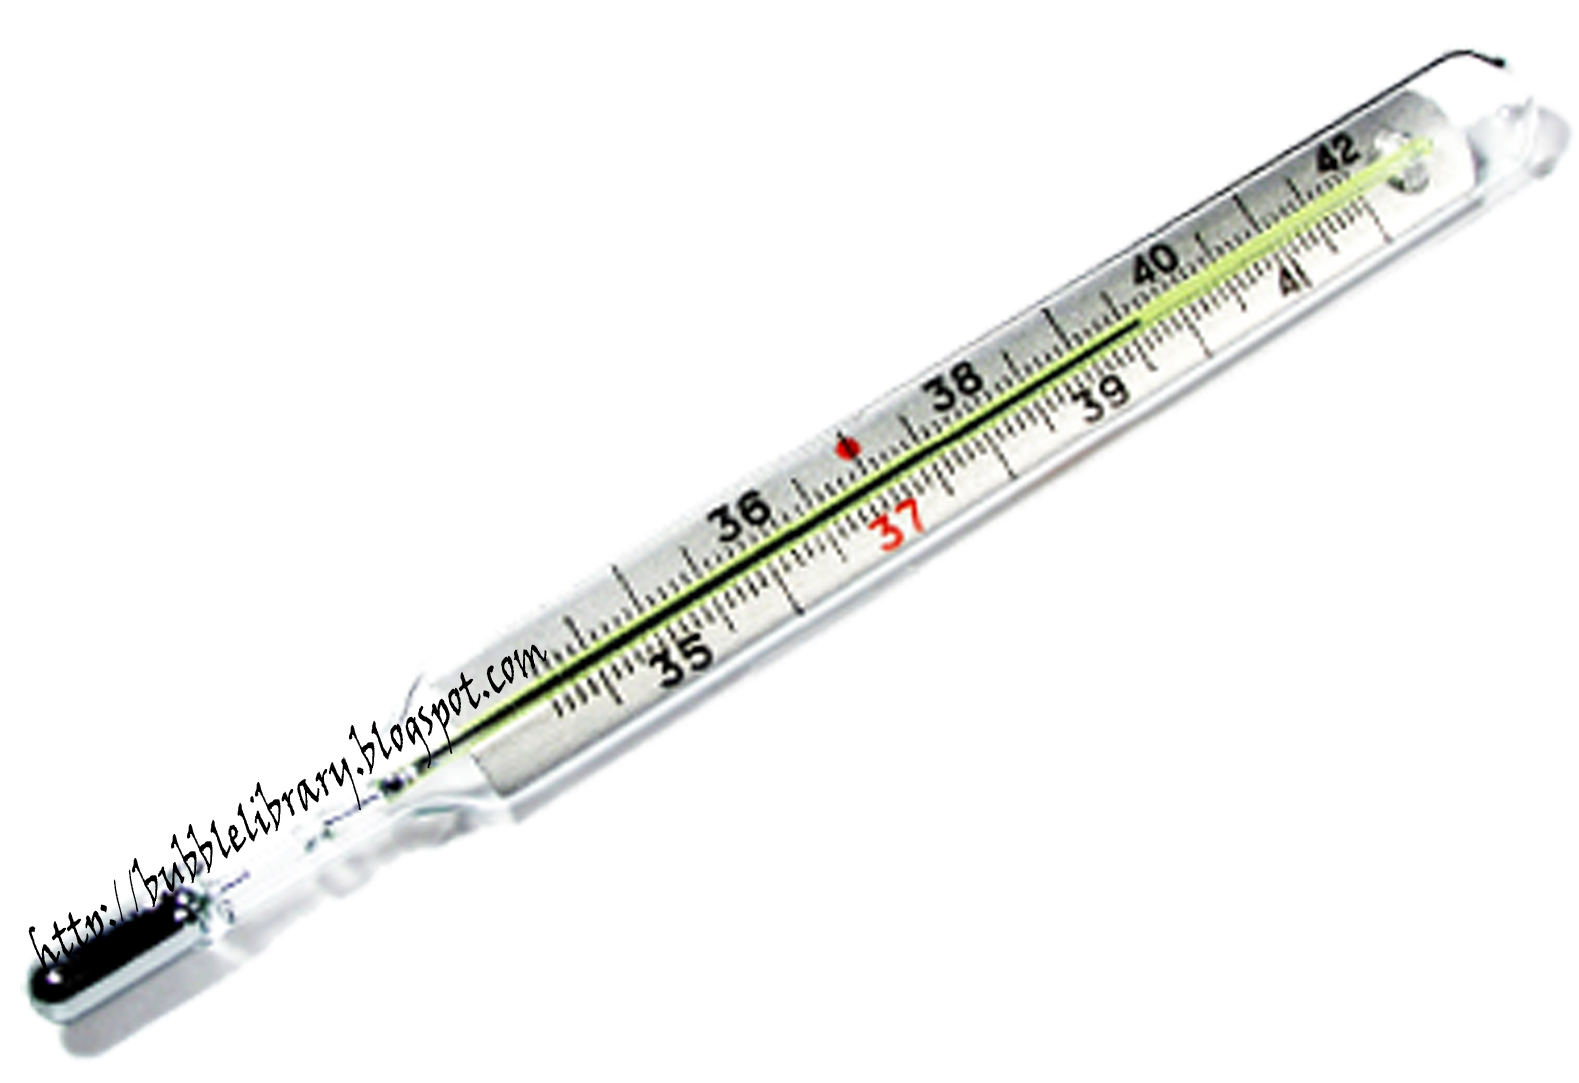 B u B b L e L i B R A R Y: When was the thermometer invented?